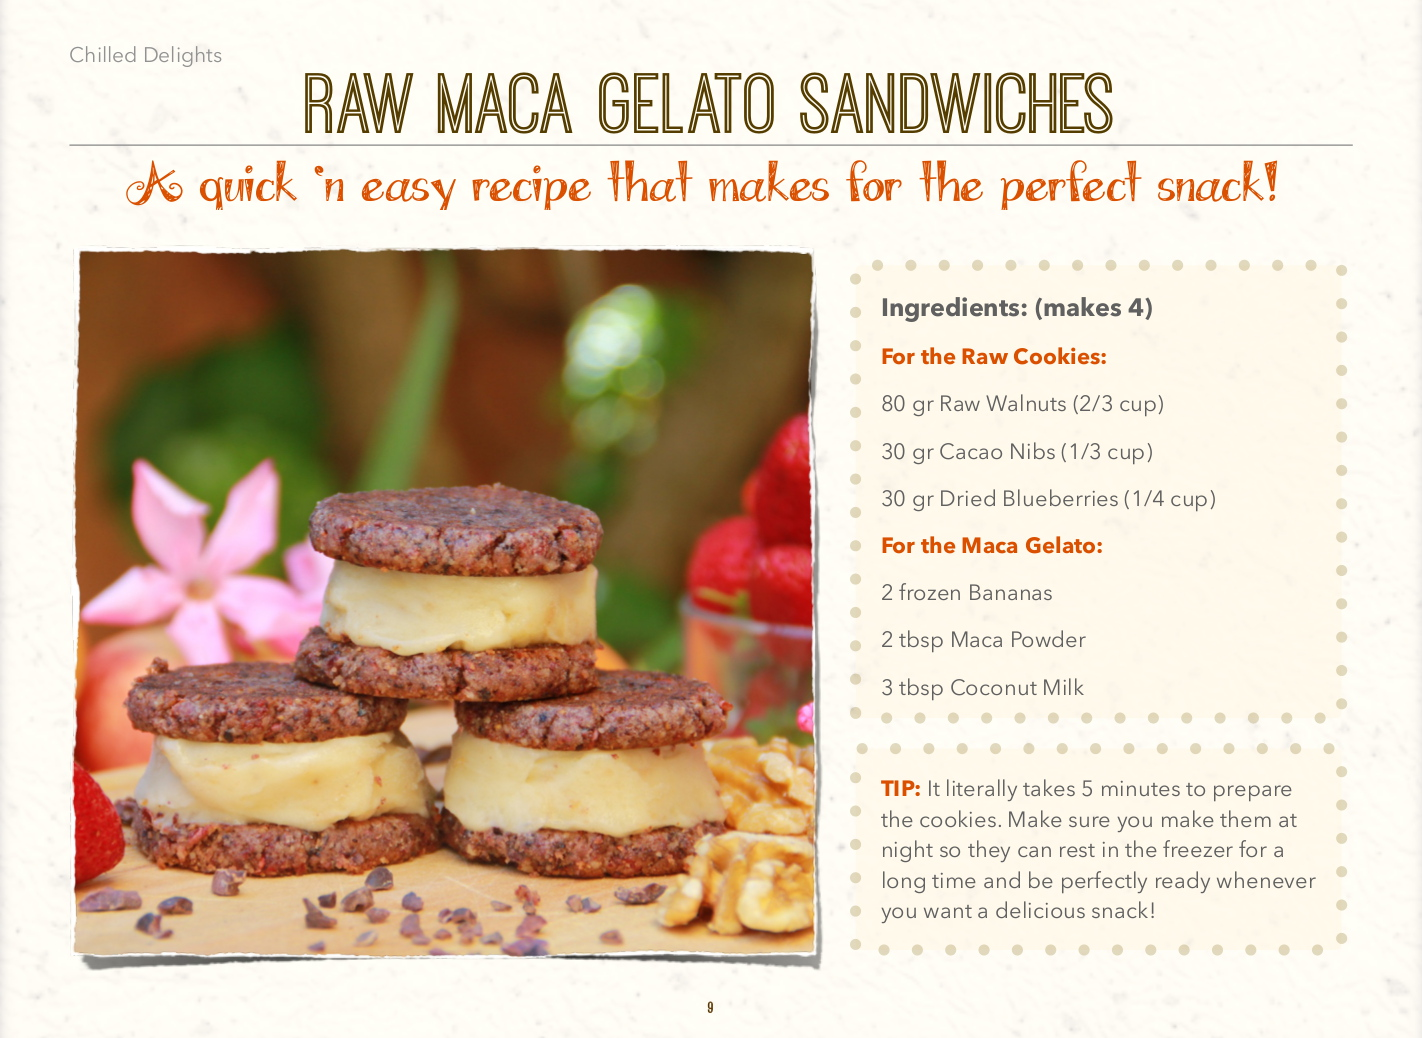 raw_maca_gelato_sandwiches_1